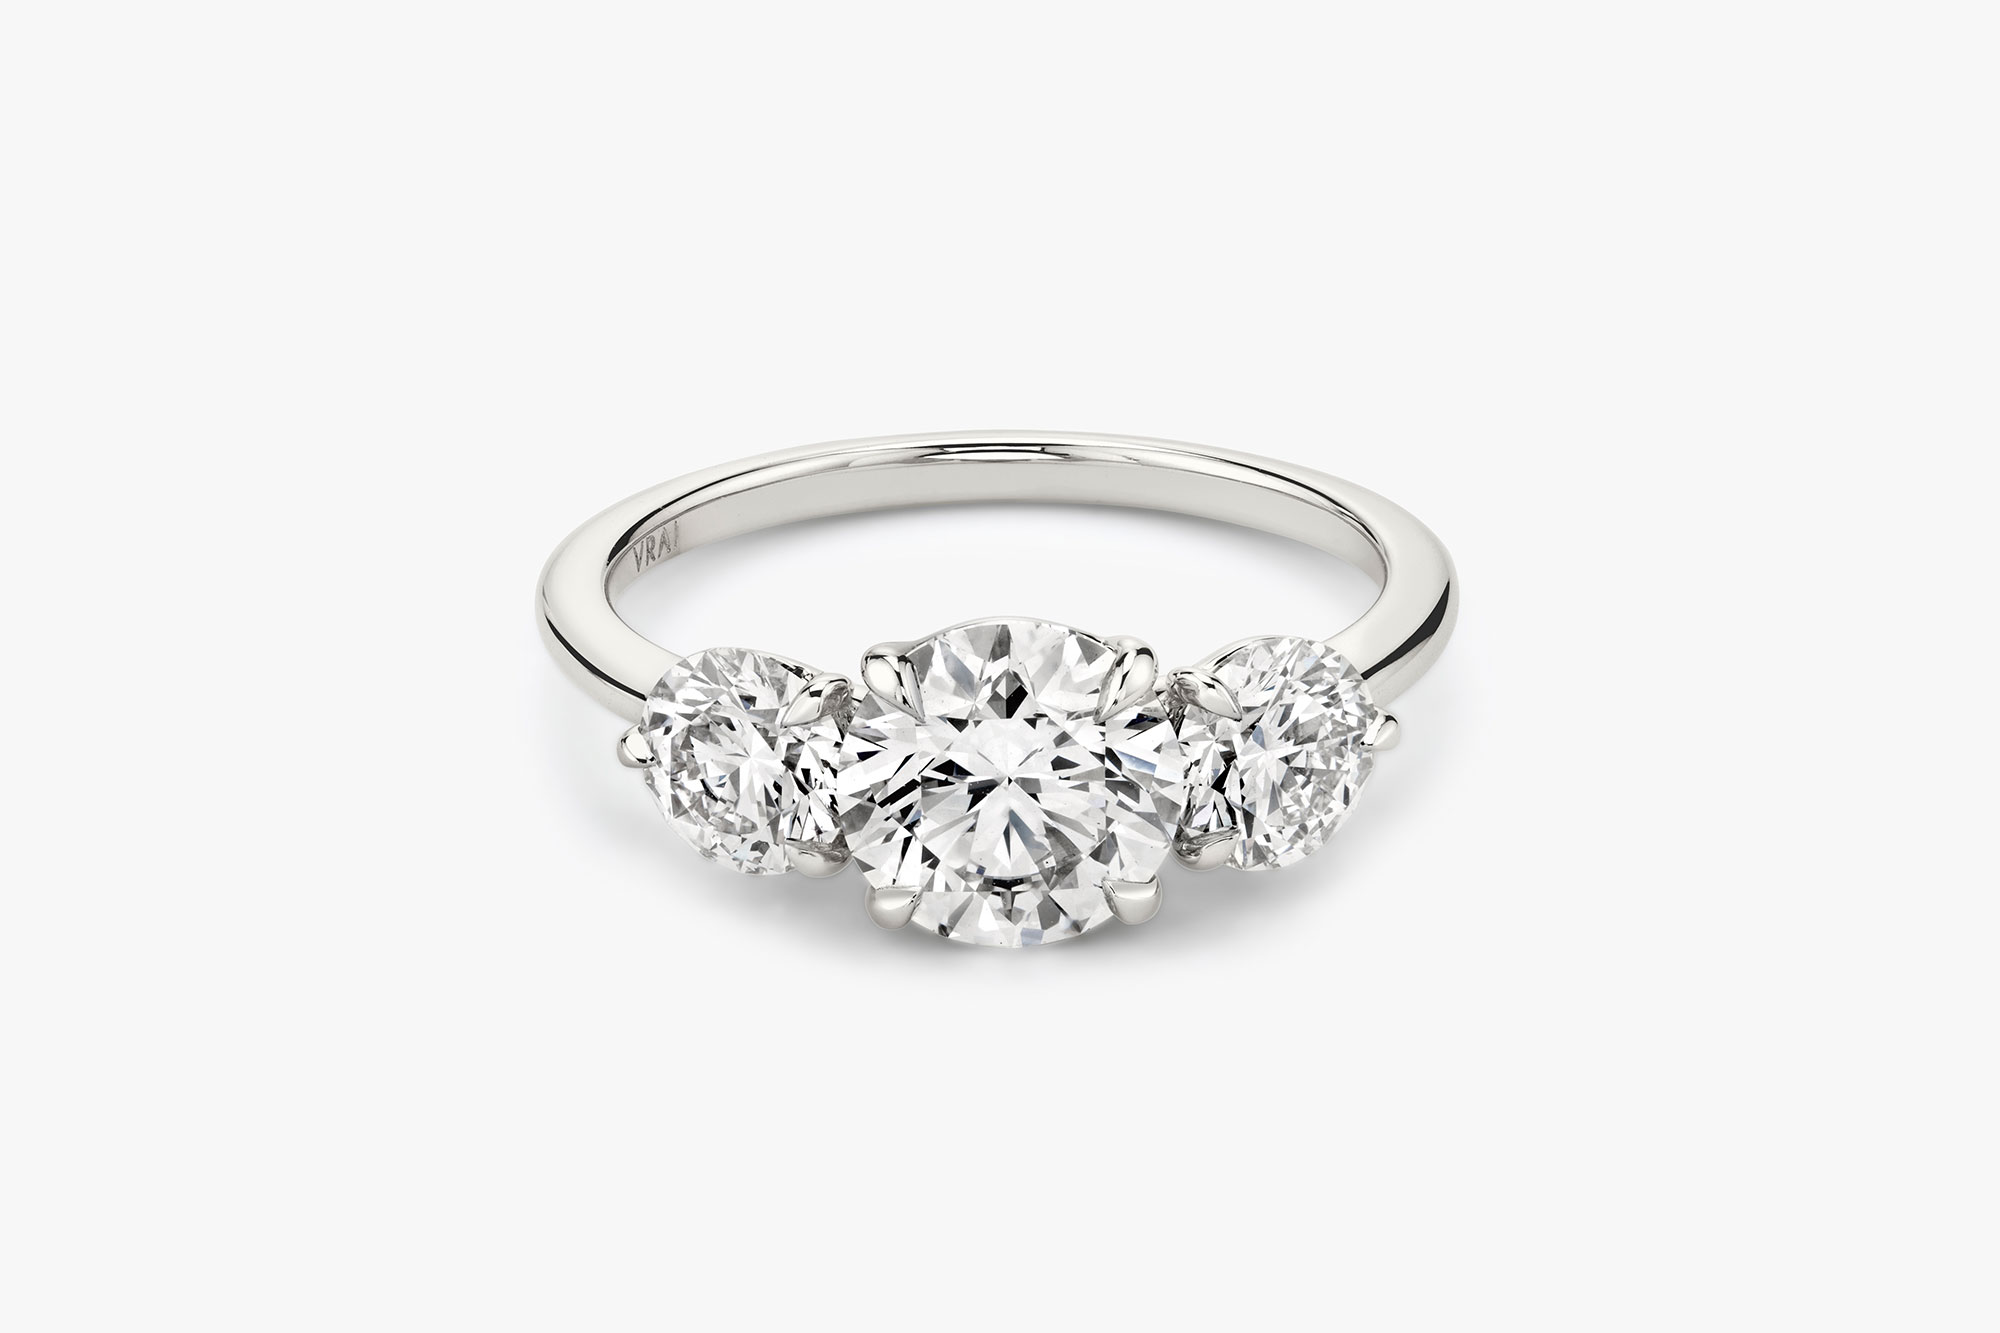 The Three Stone ring in platinum with a round brilliant cut diamond